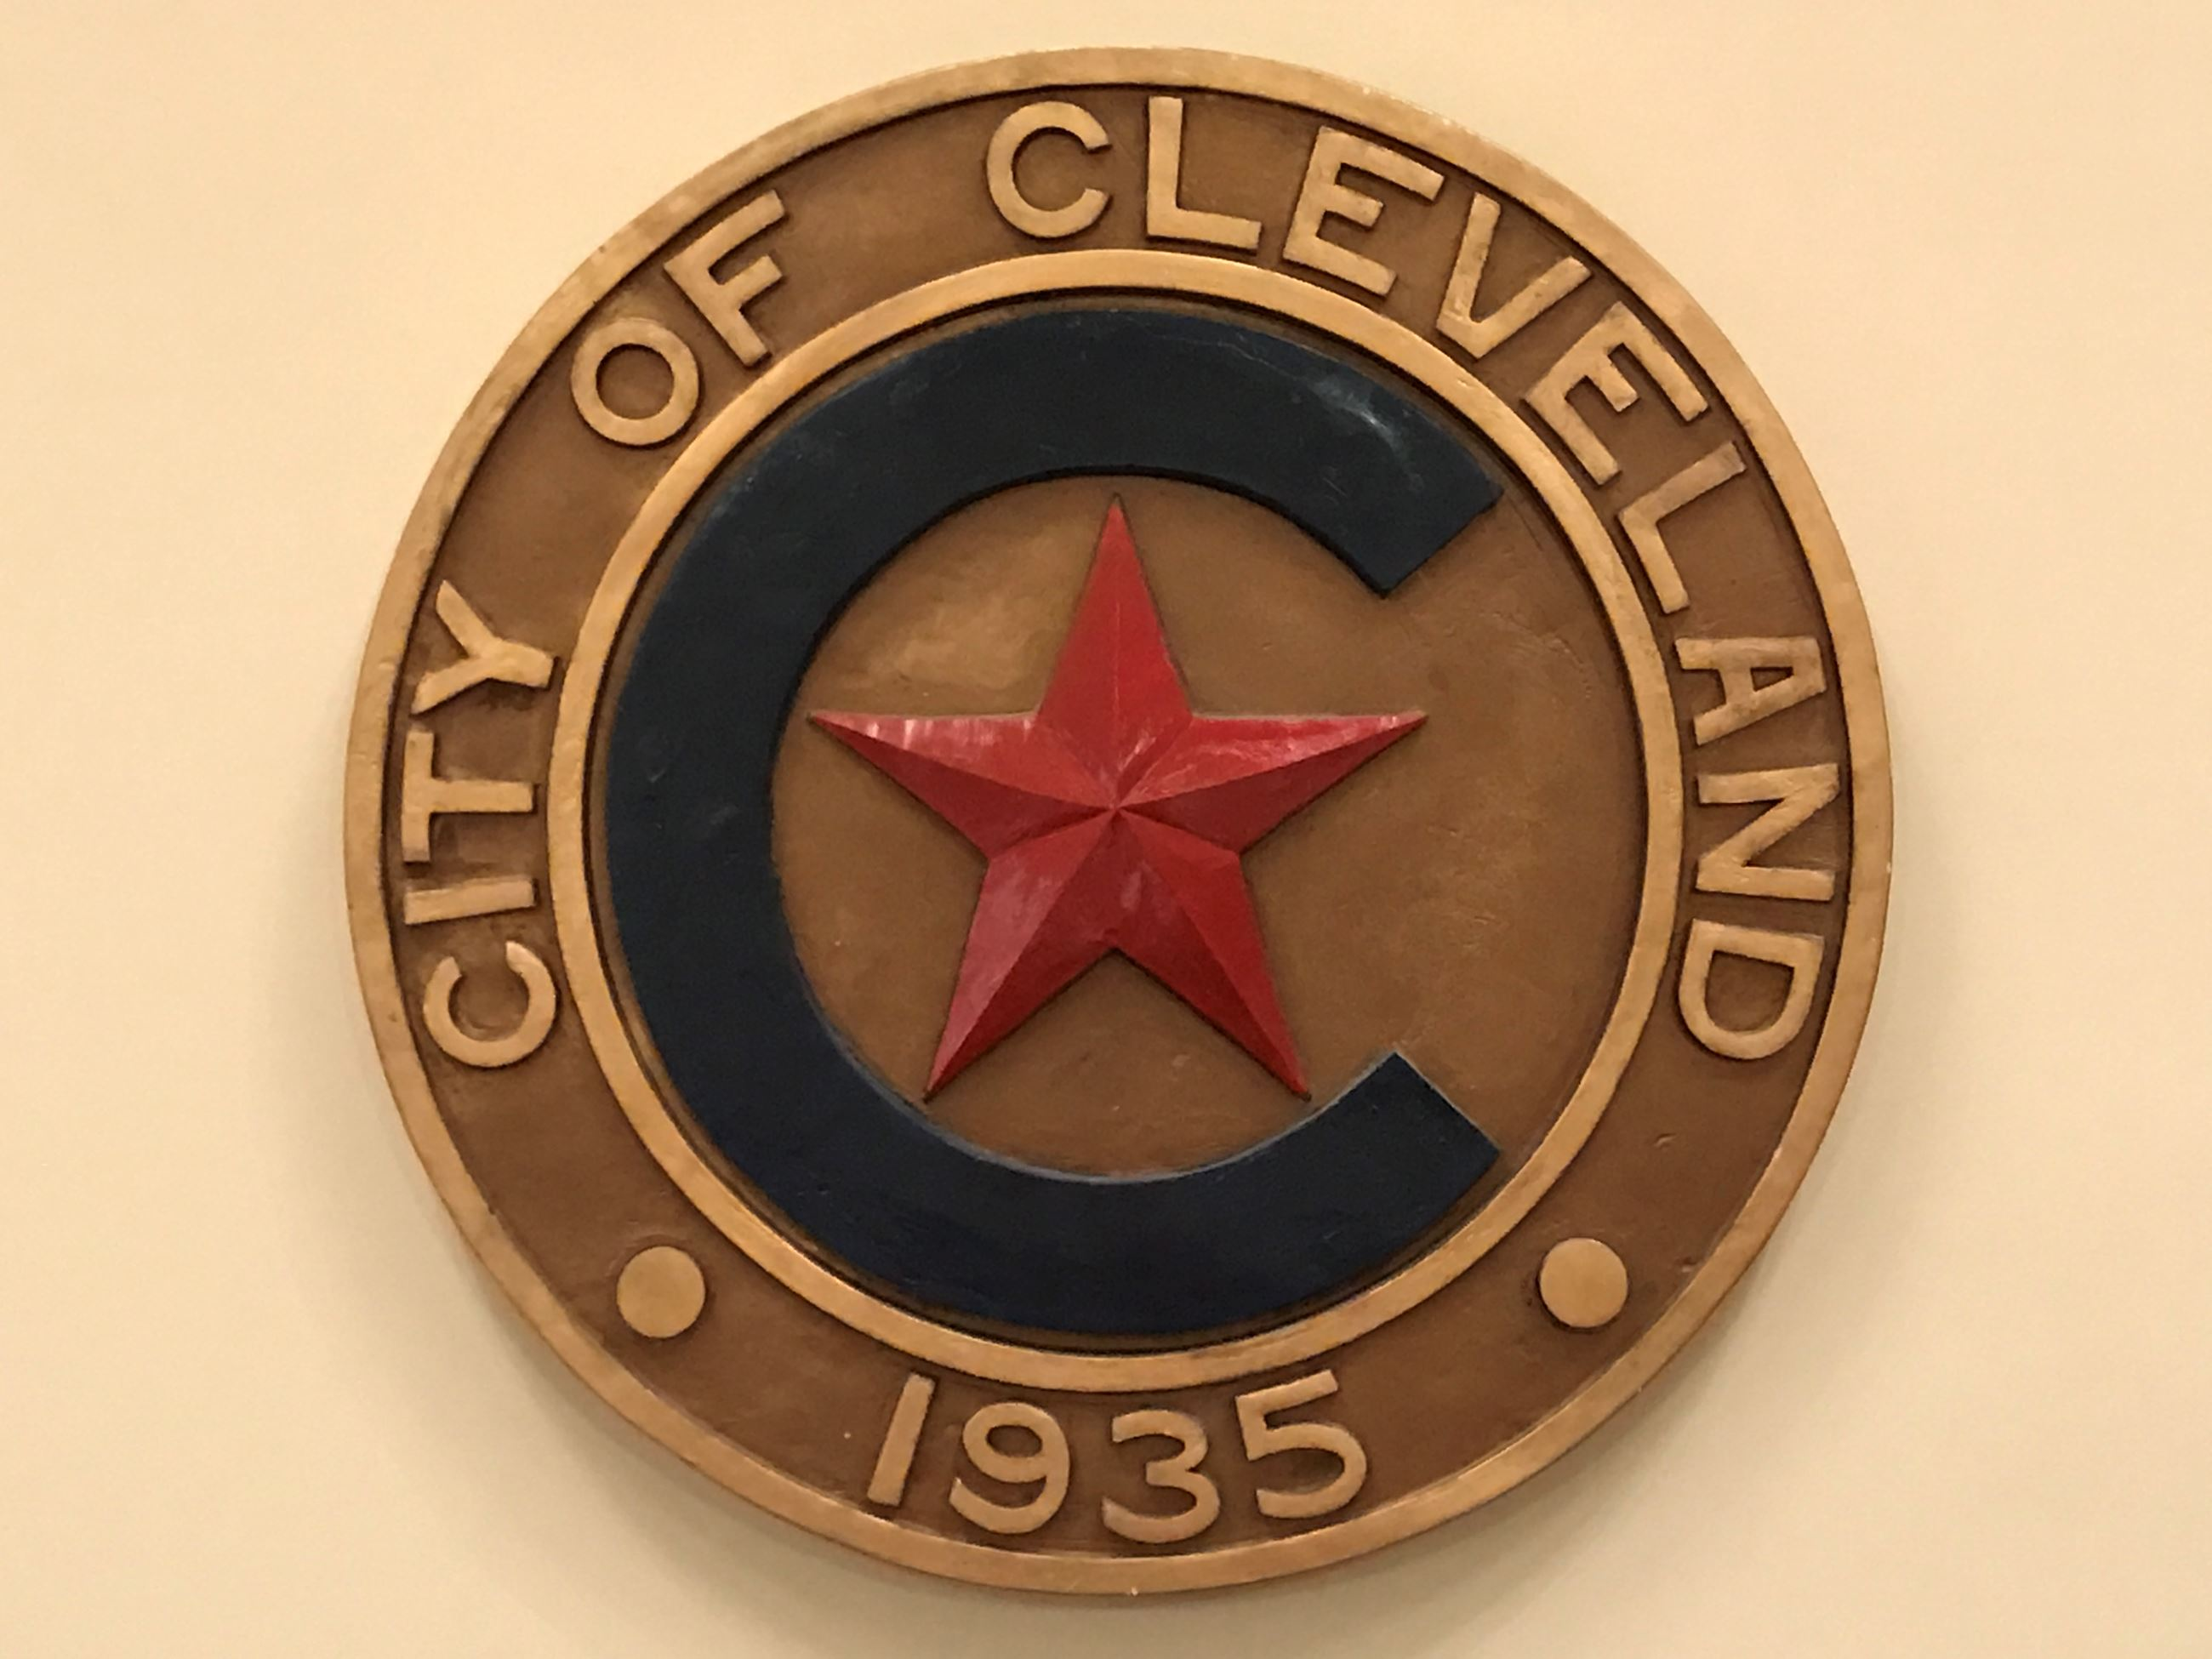 City of Cleveland Seal